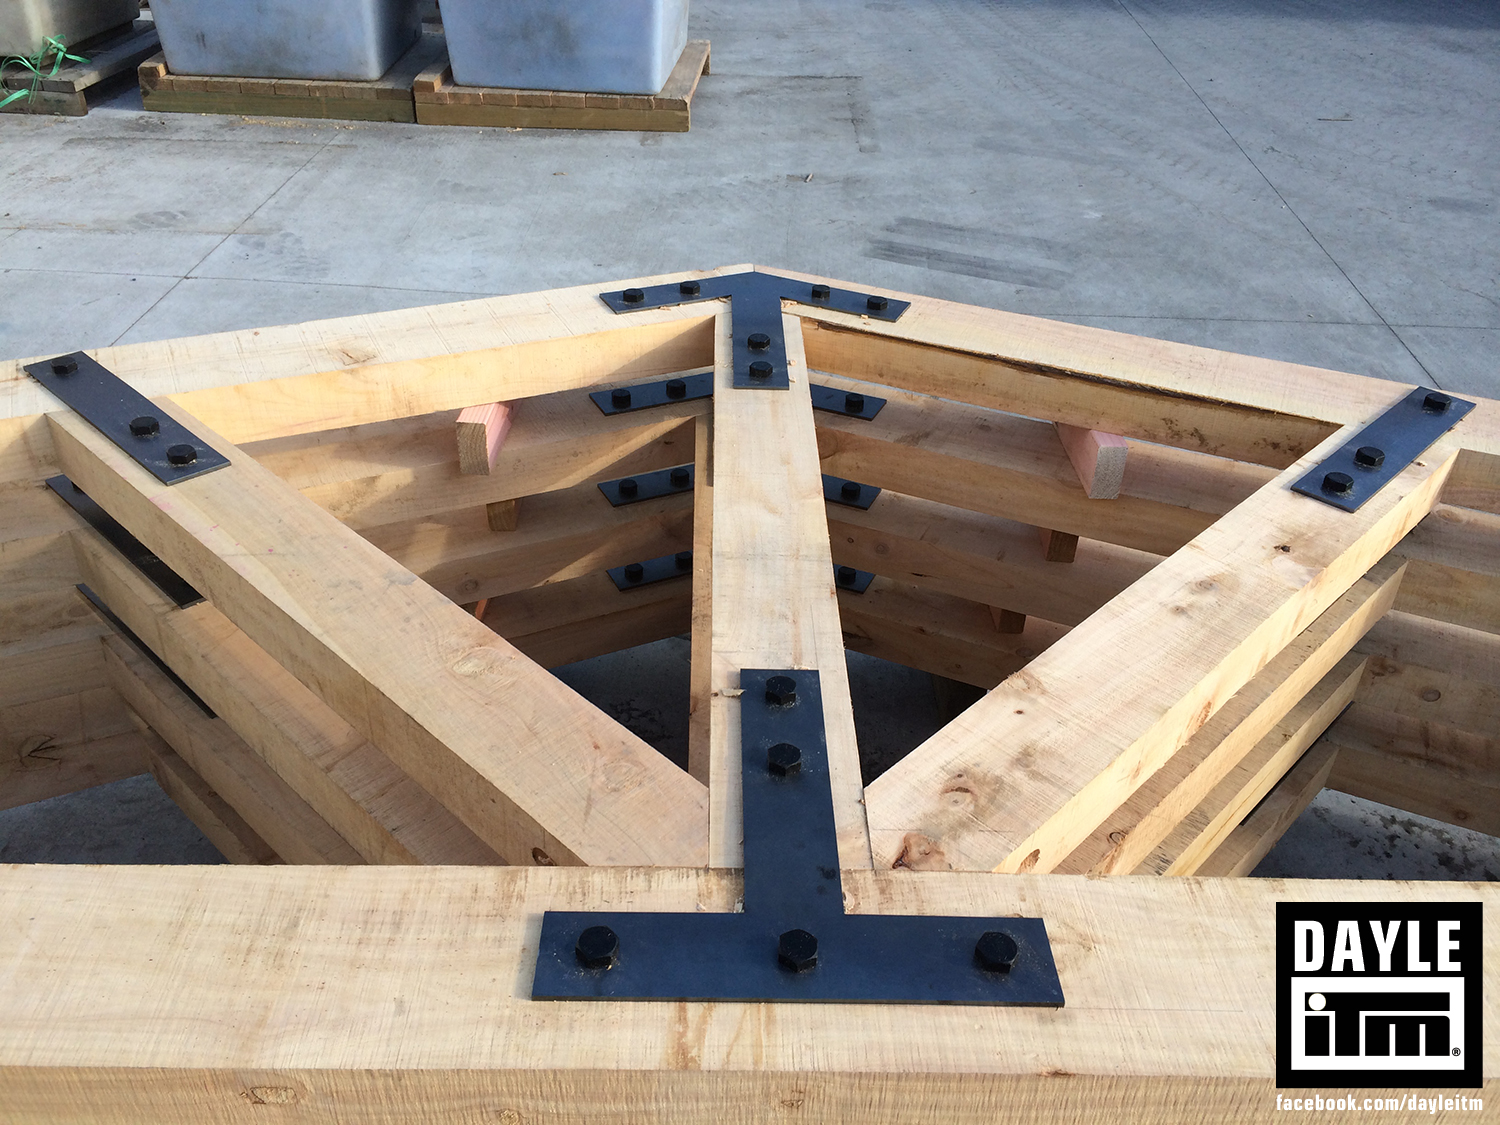 Exposed Trusses Dayle Itm Your Building Supplies